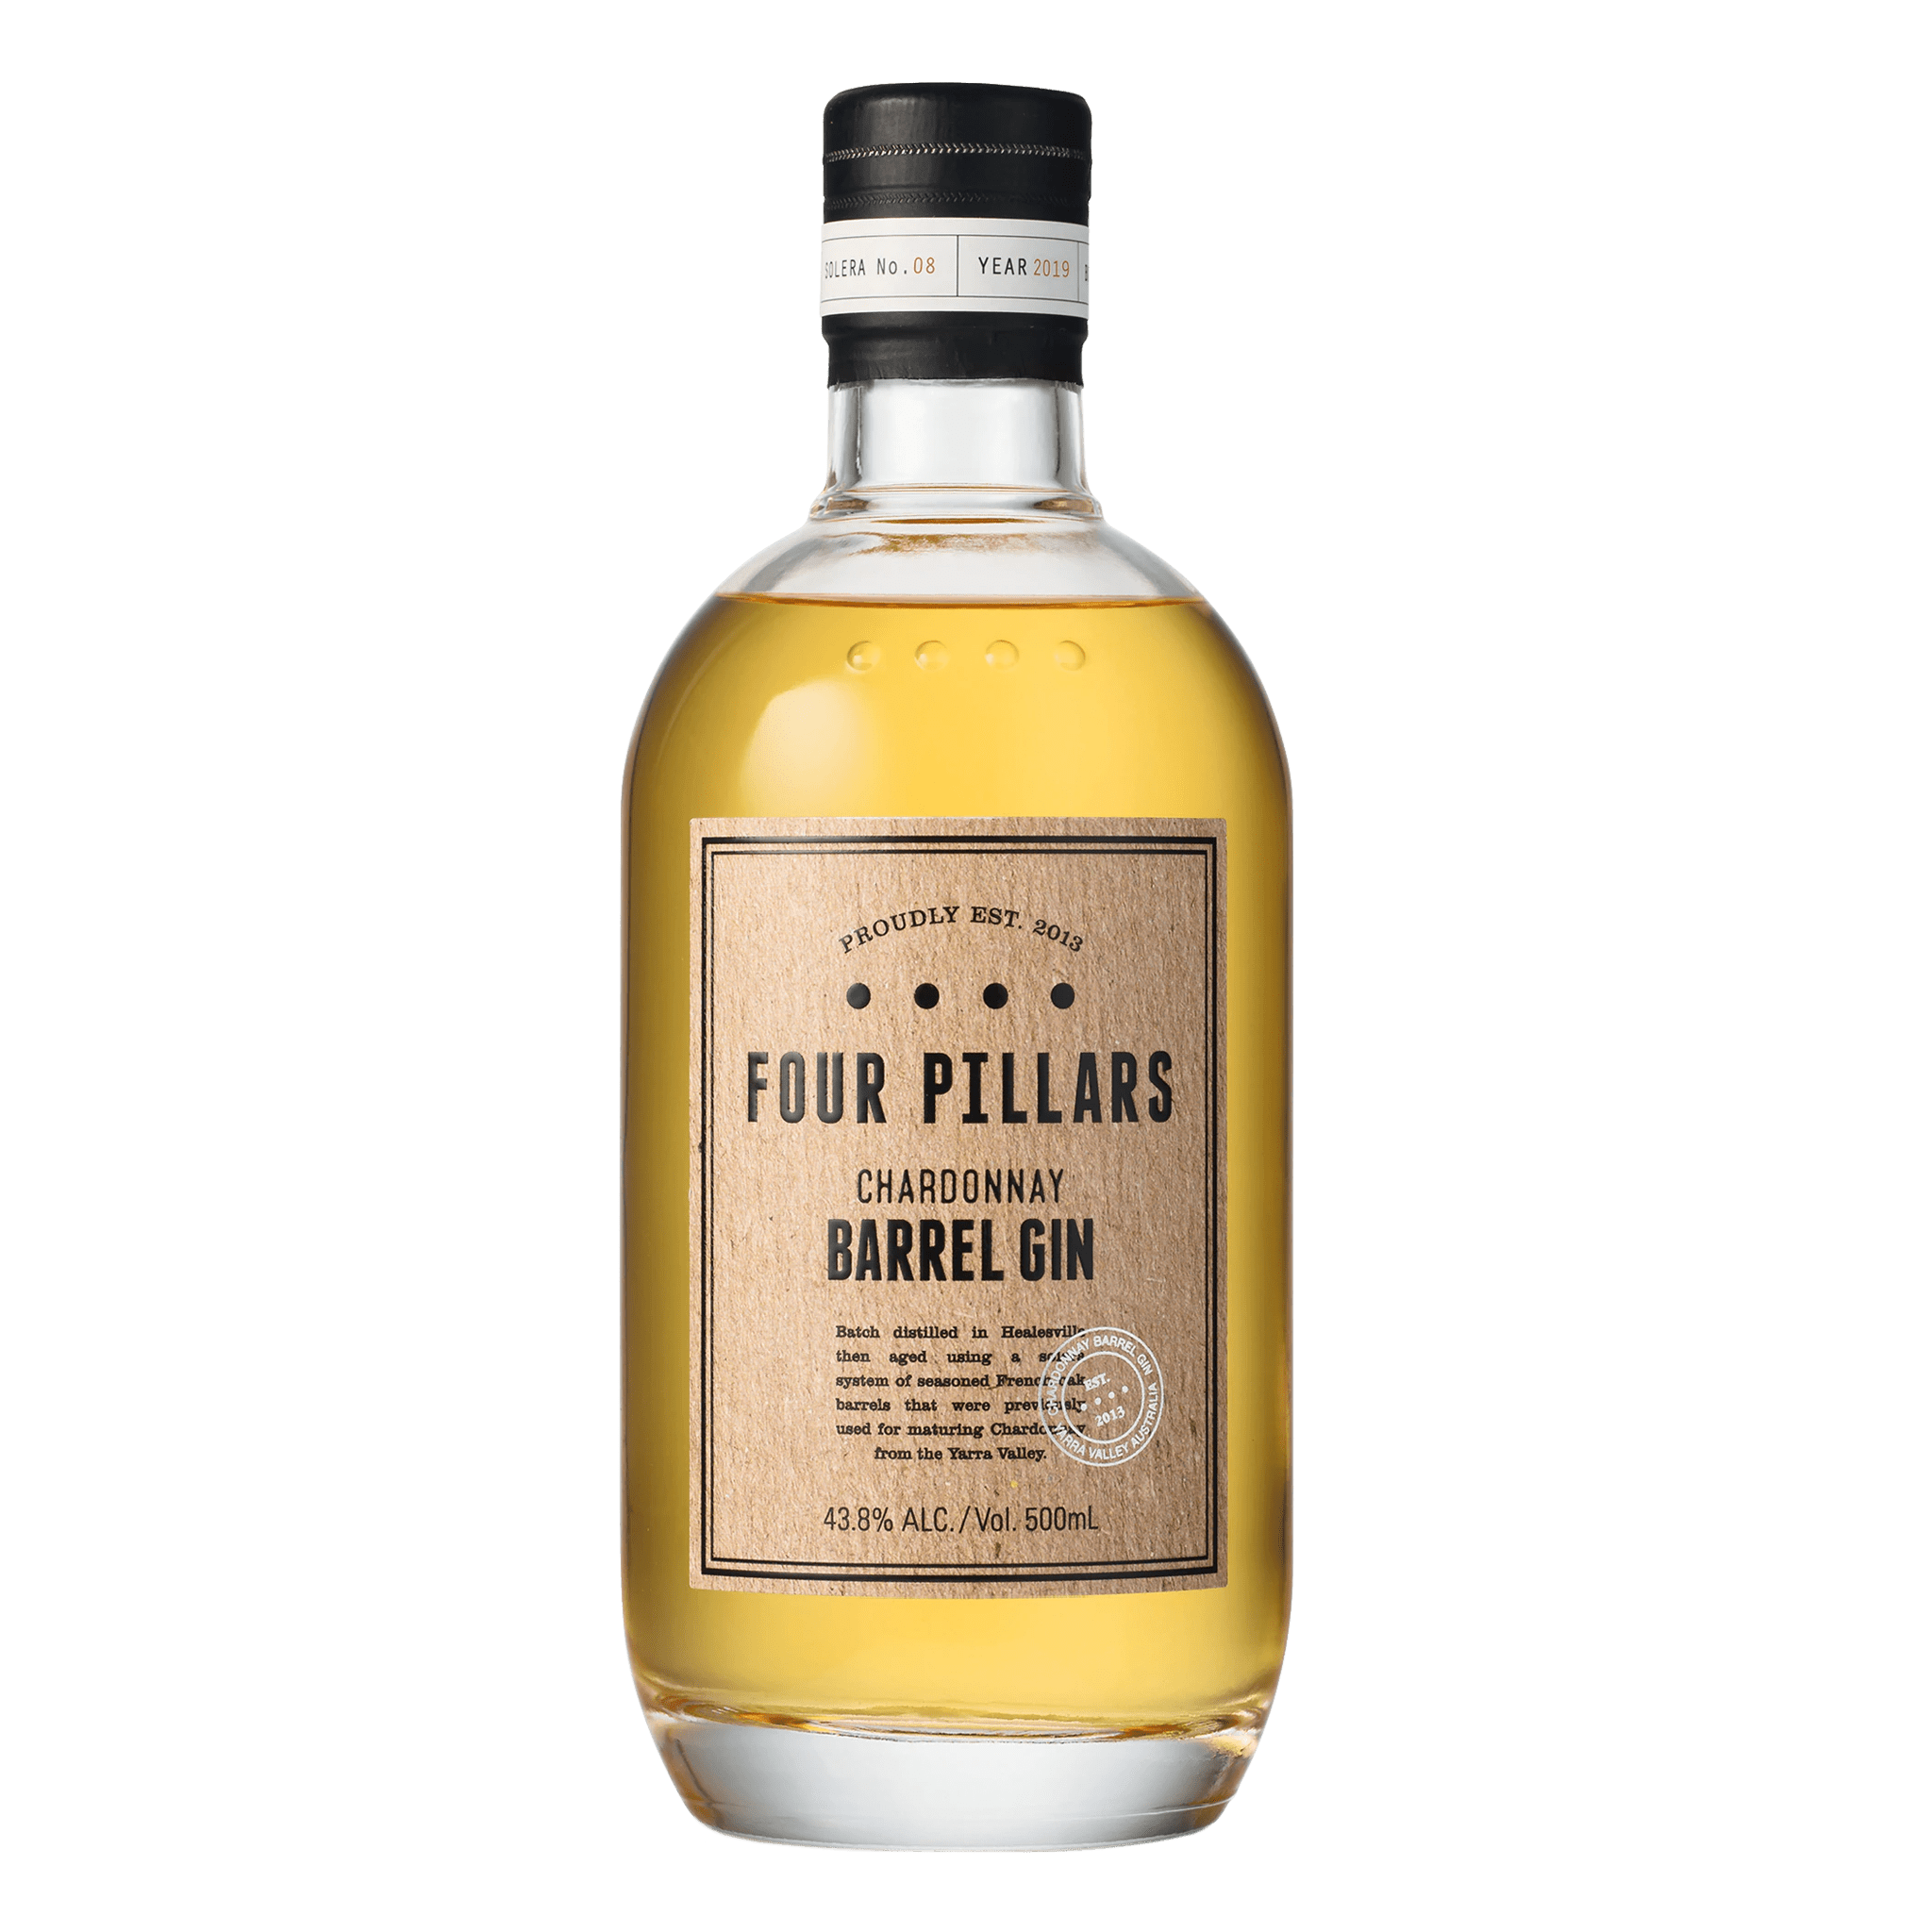 Four Pillars Chardonnay Barrel Gin 500ml - Kent Street Cellars